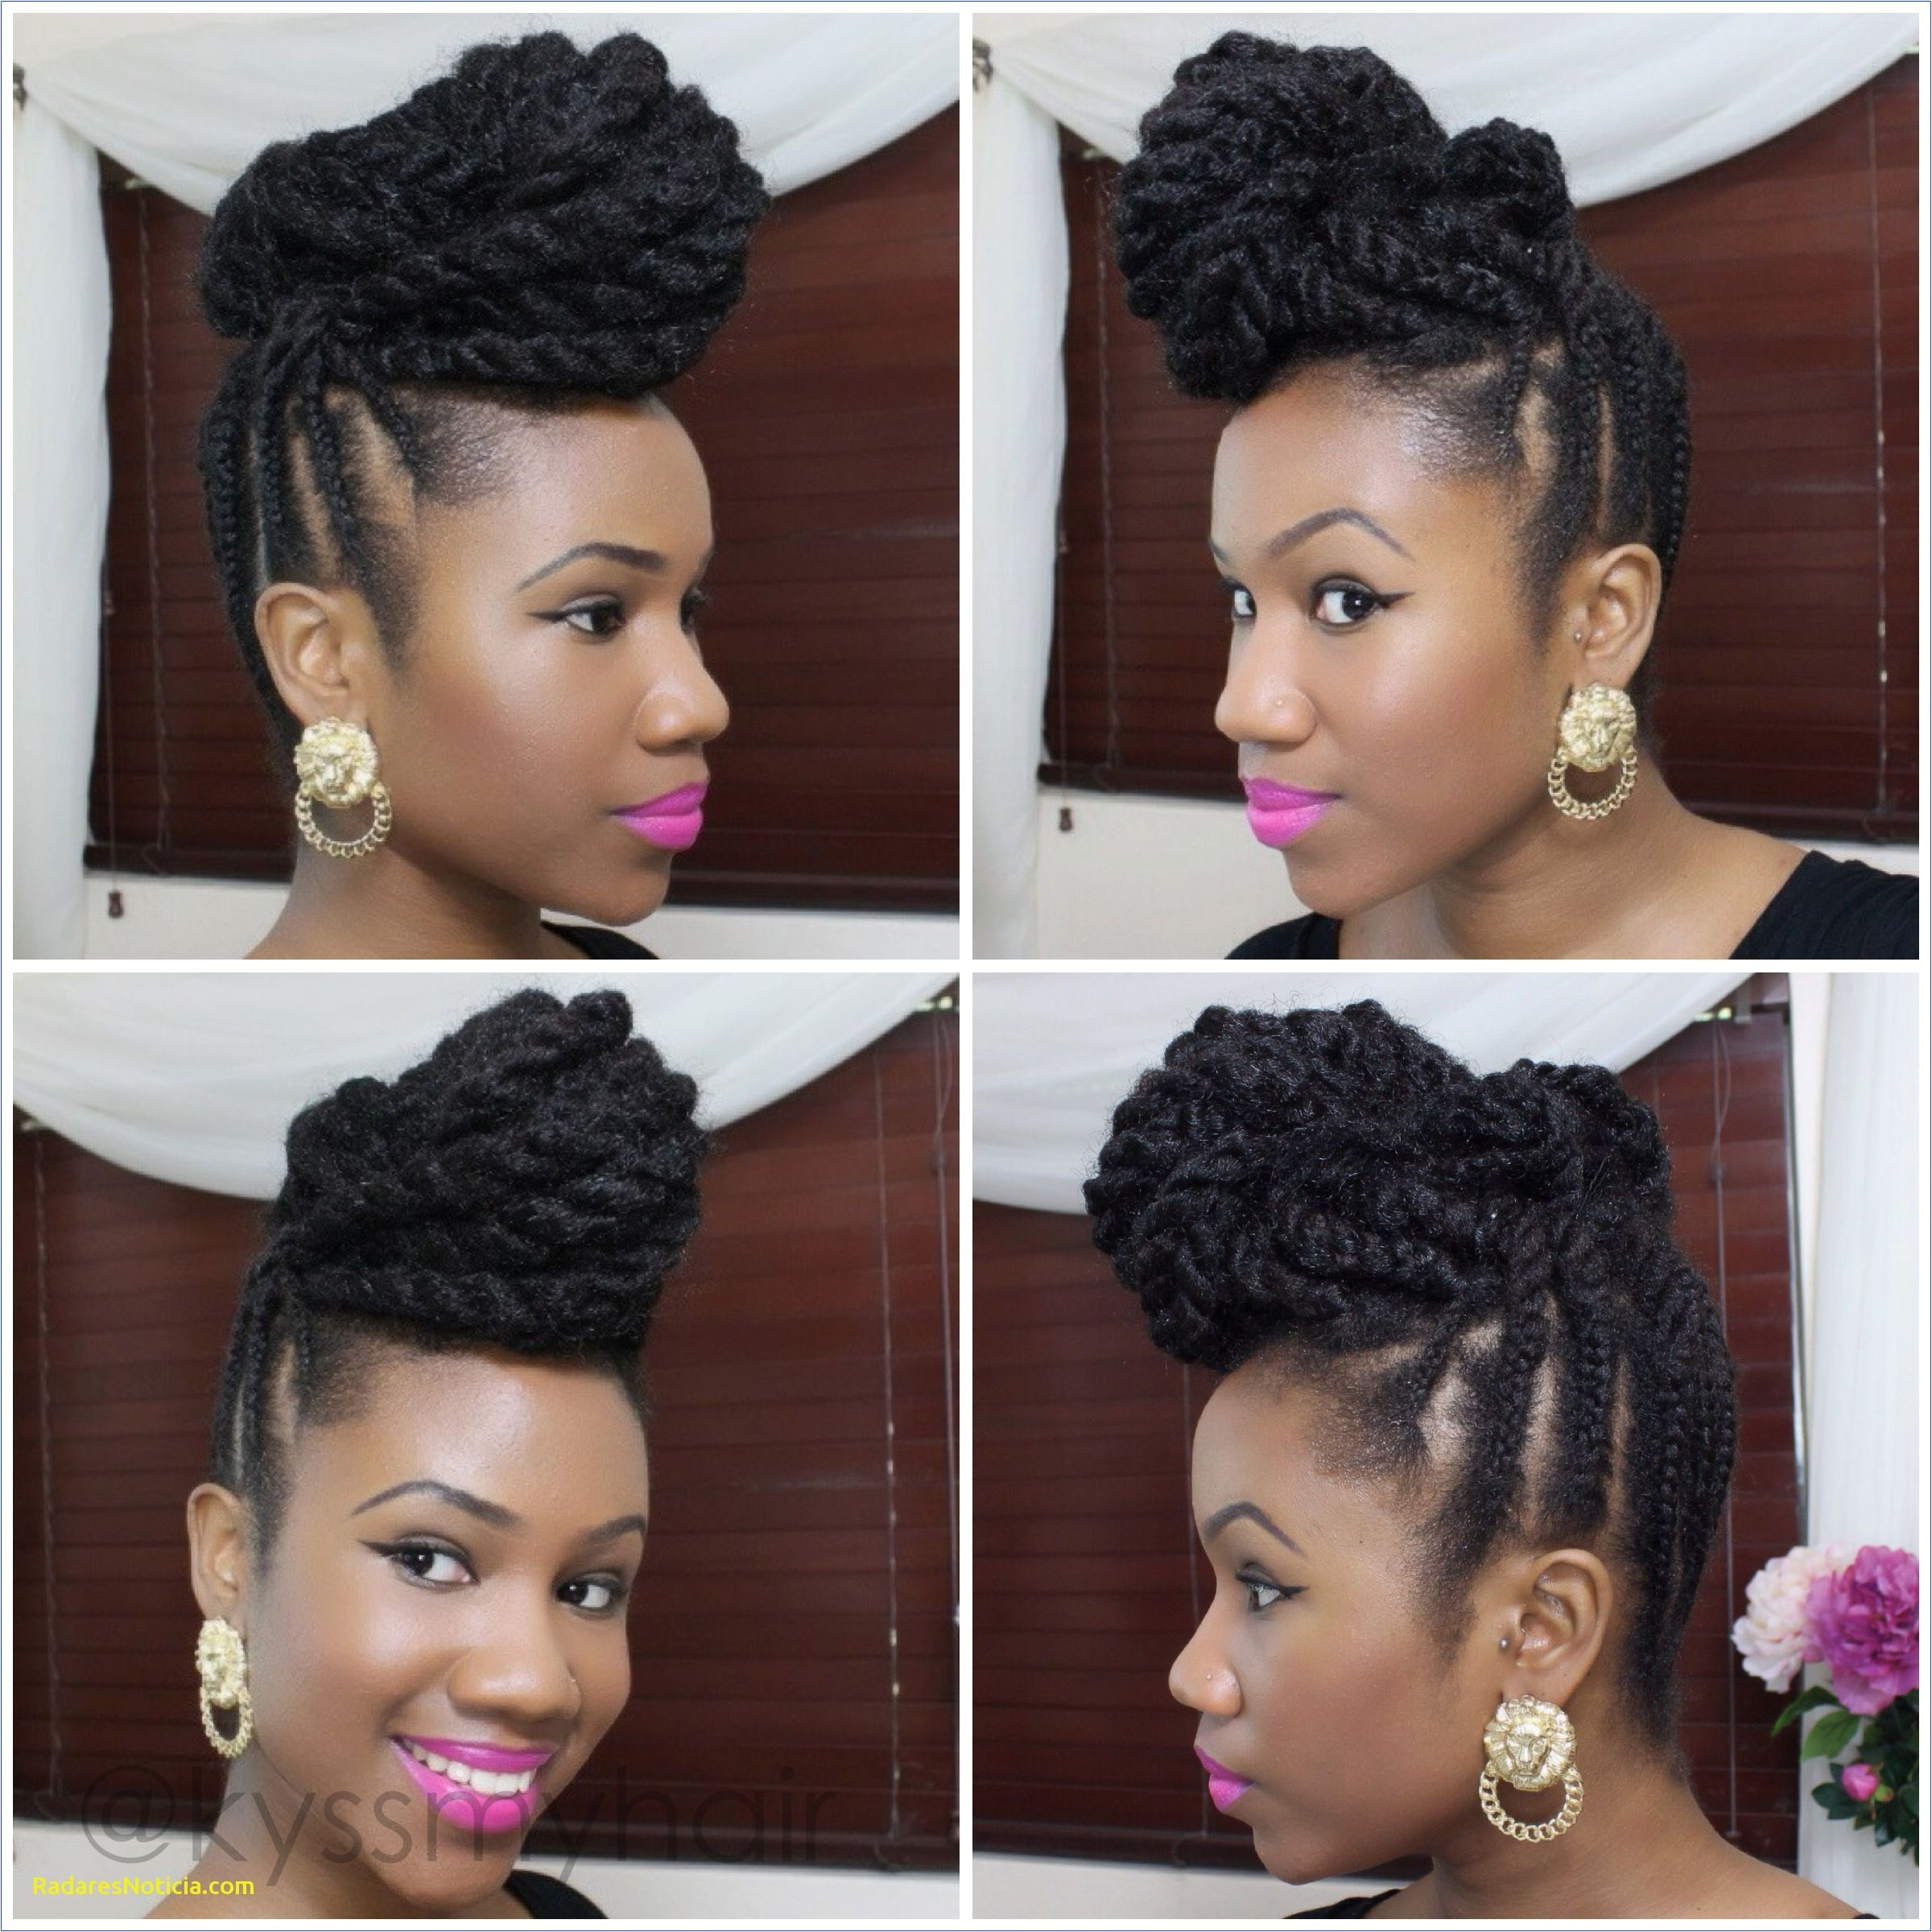 Braided Updo Hairstyles Braided Updo Natural Hair Using Marley Hair Kyss My Hair